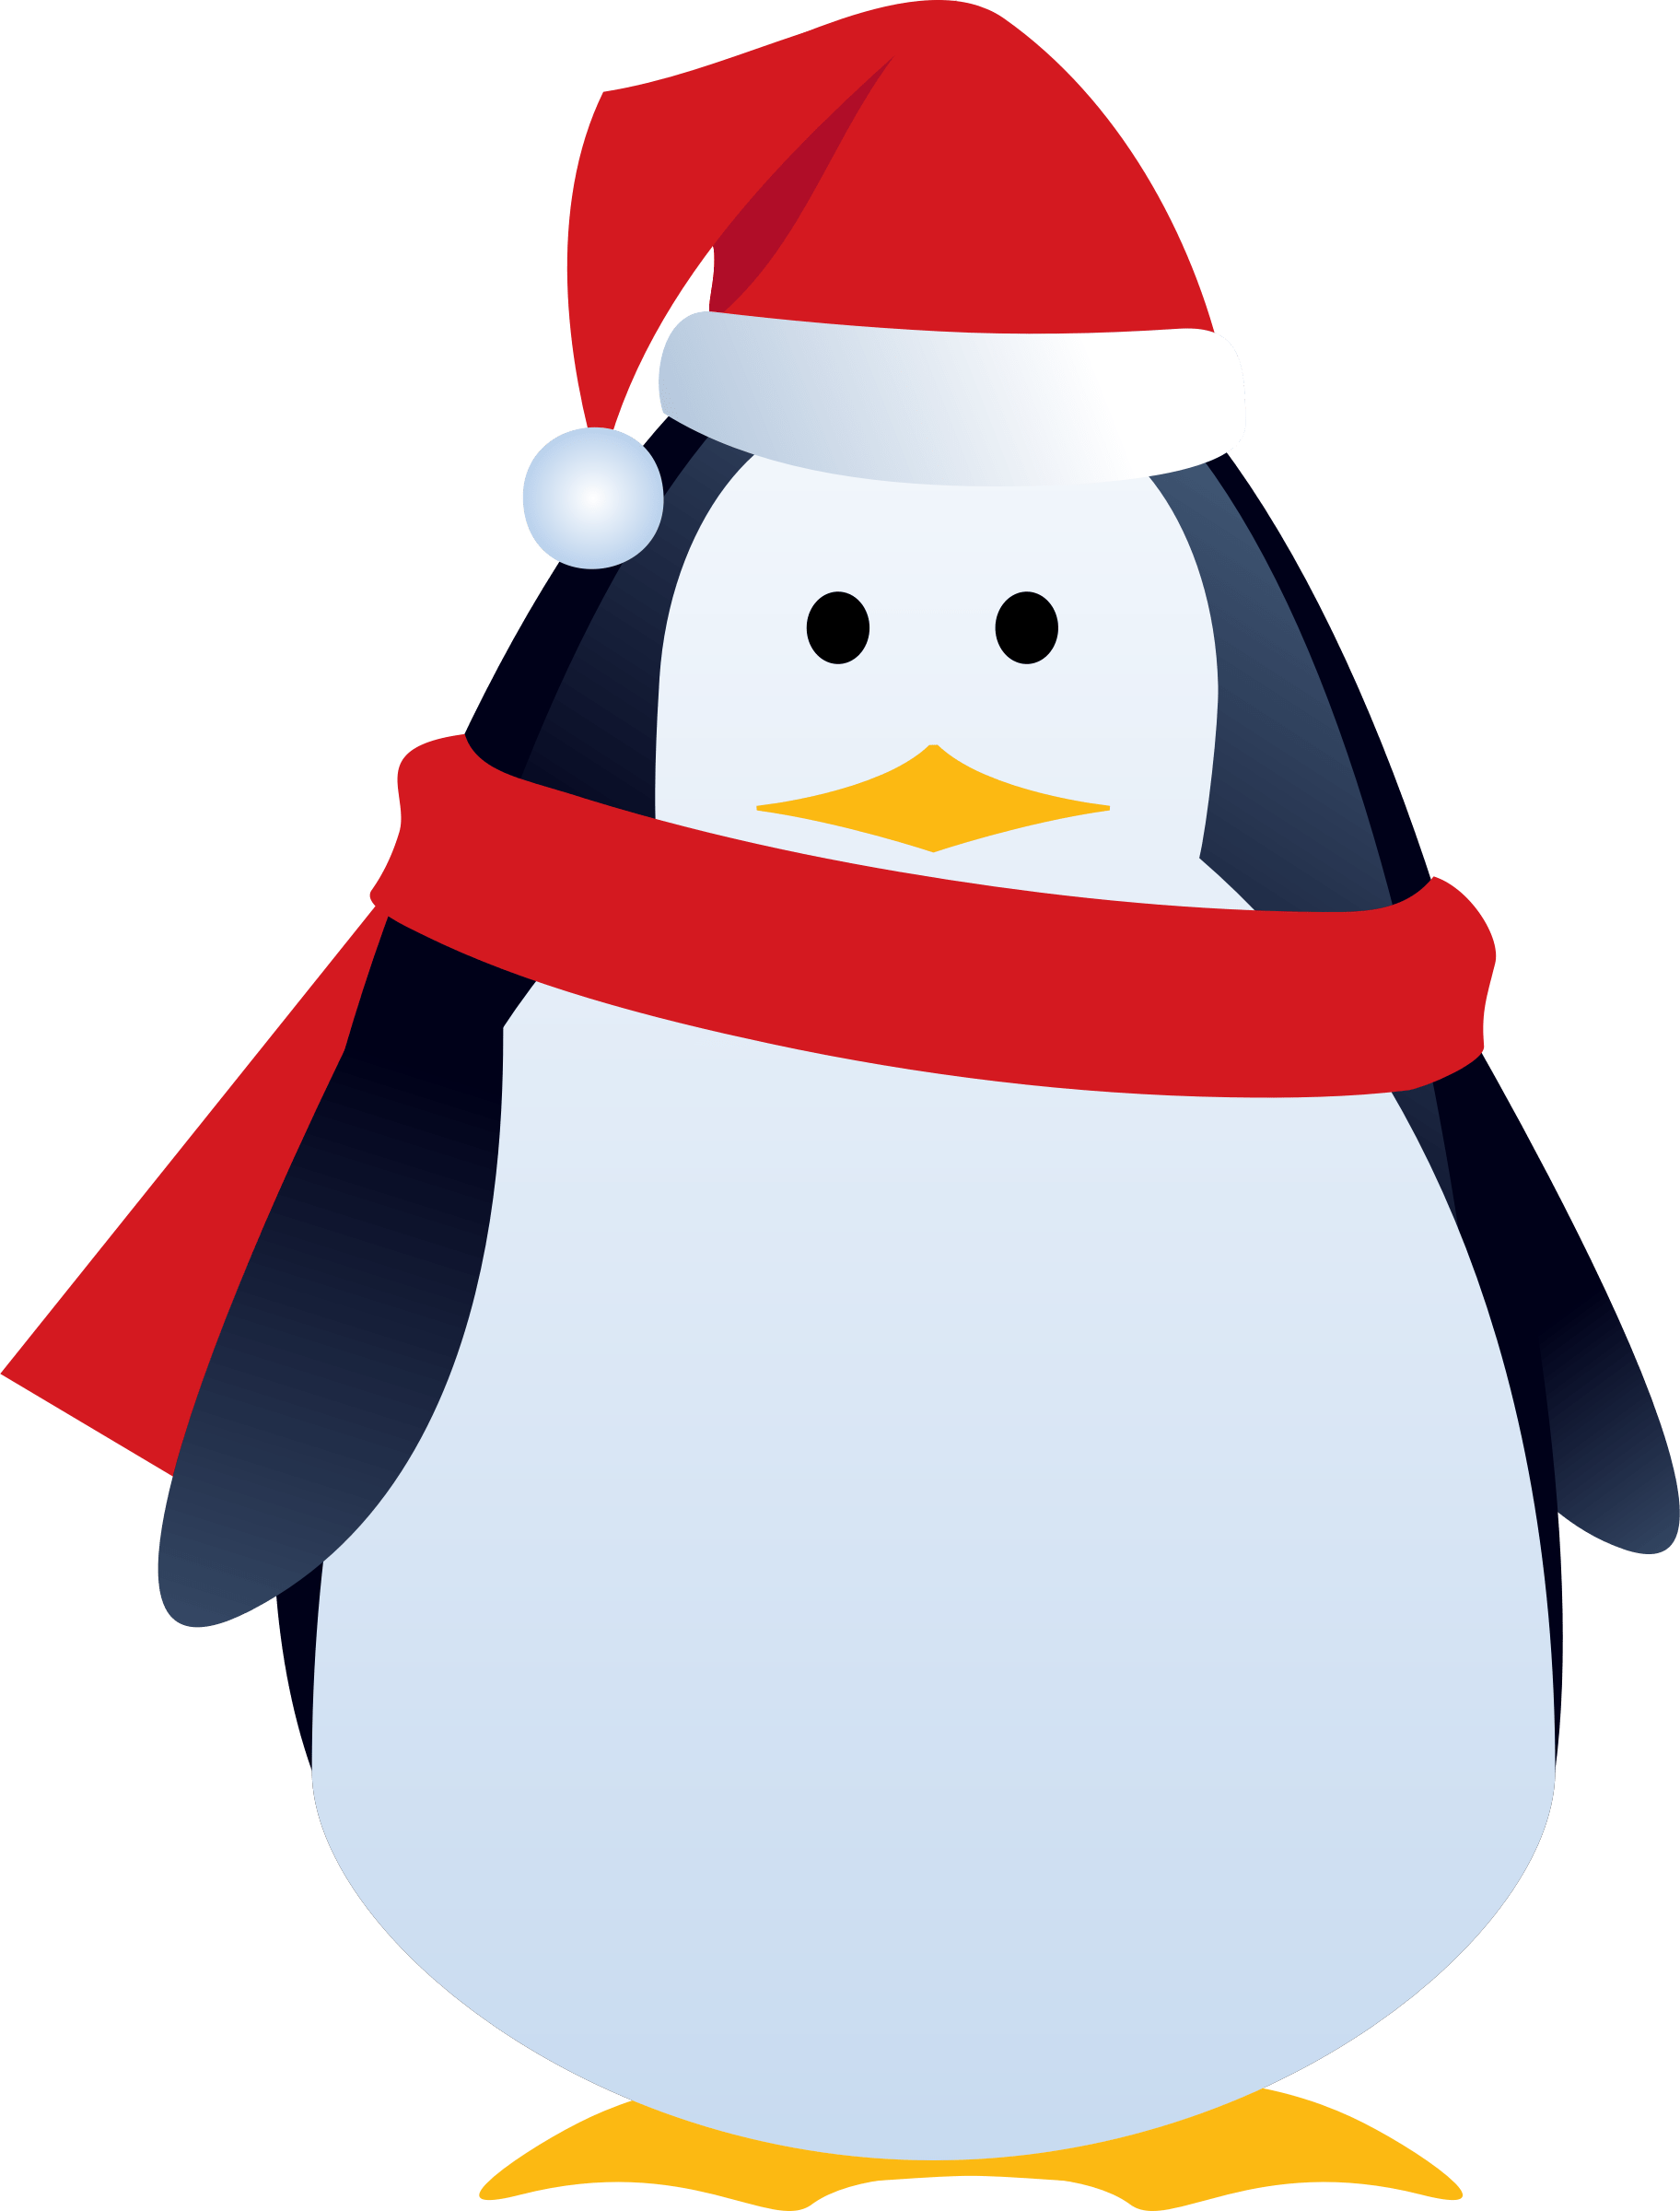 Christmas penguin family clipart banner freeuse library Christmas Pudding transparent PNG - StickPNG banner freeuse library